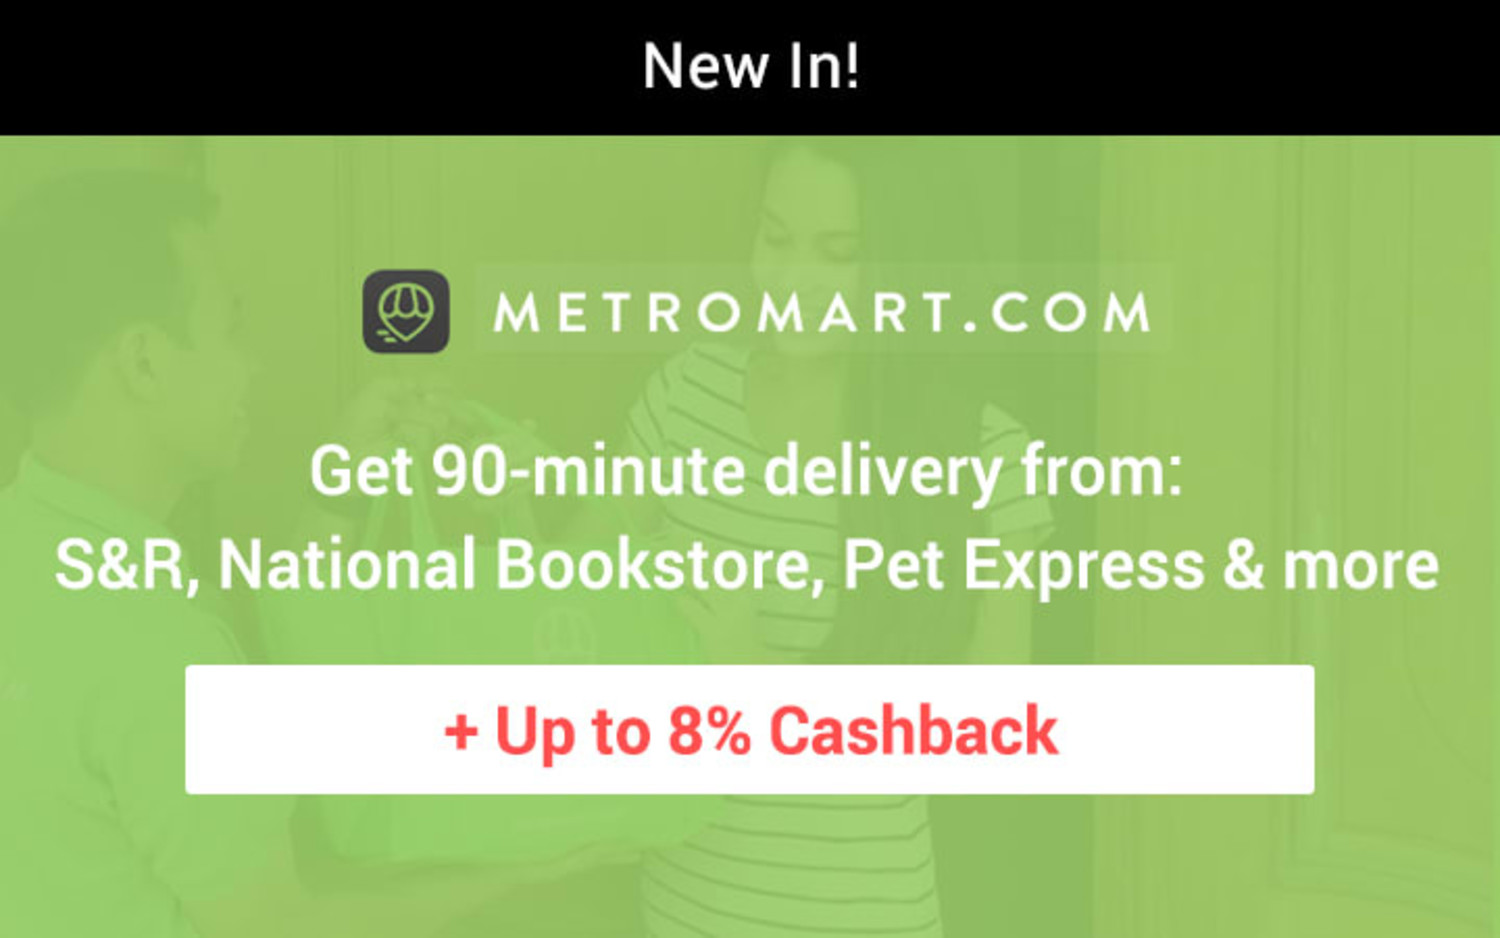 Metromart: Shop from Pet Express, National Bookstore, Toy Kingdom & more + Up to 8% Cashback